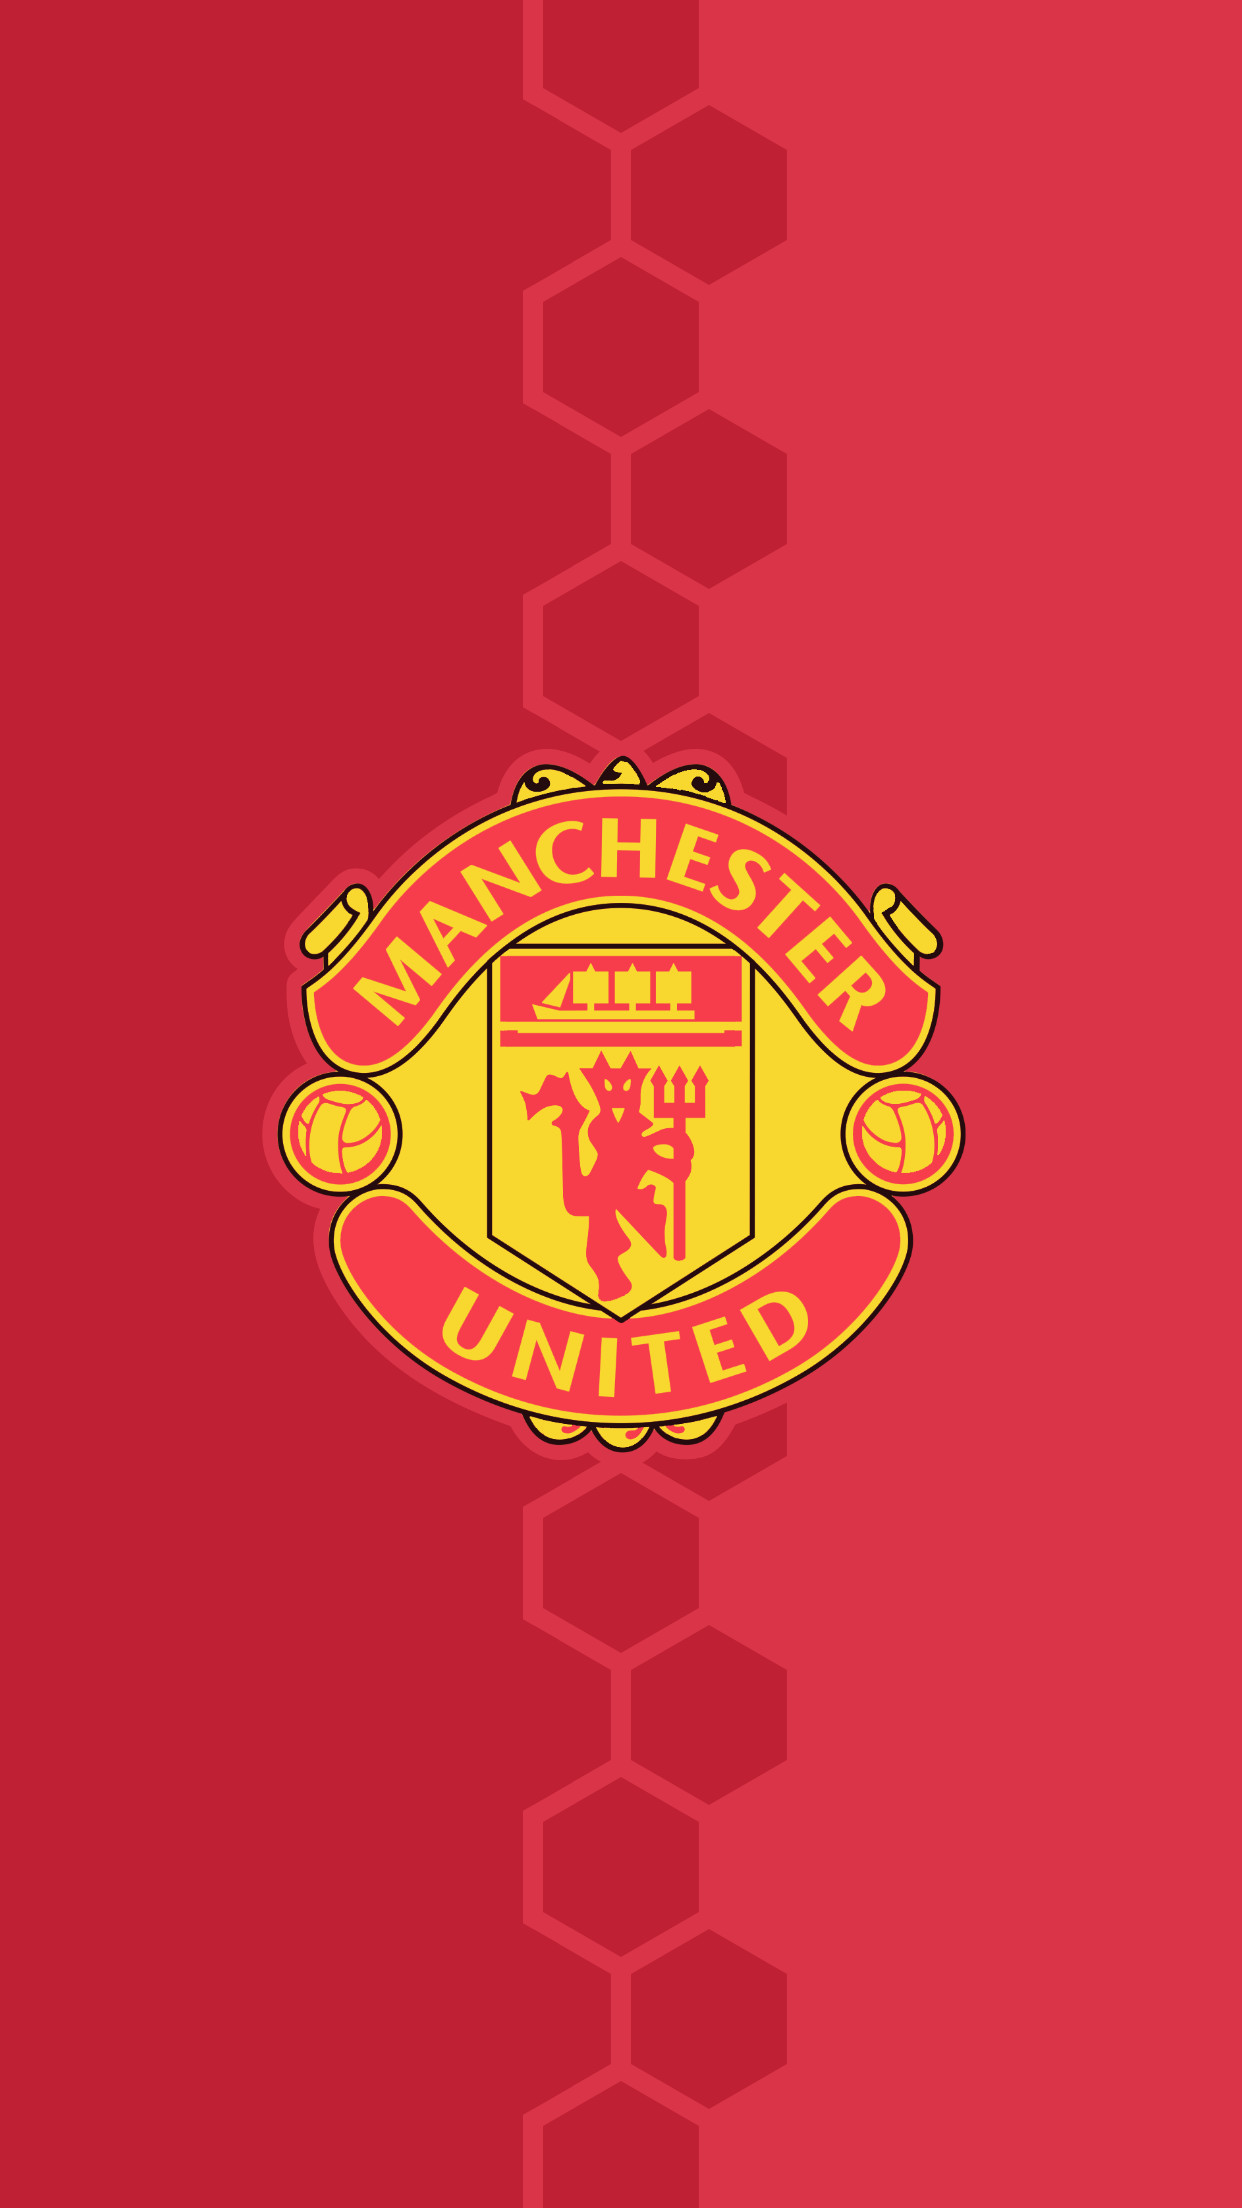 Manchester united wallpaper 2018 71 images - Cool man united wallpapers ...